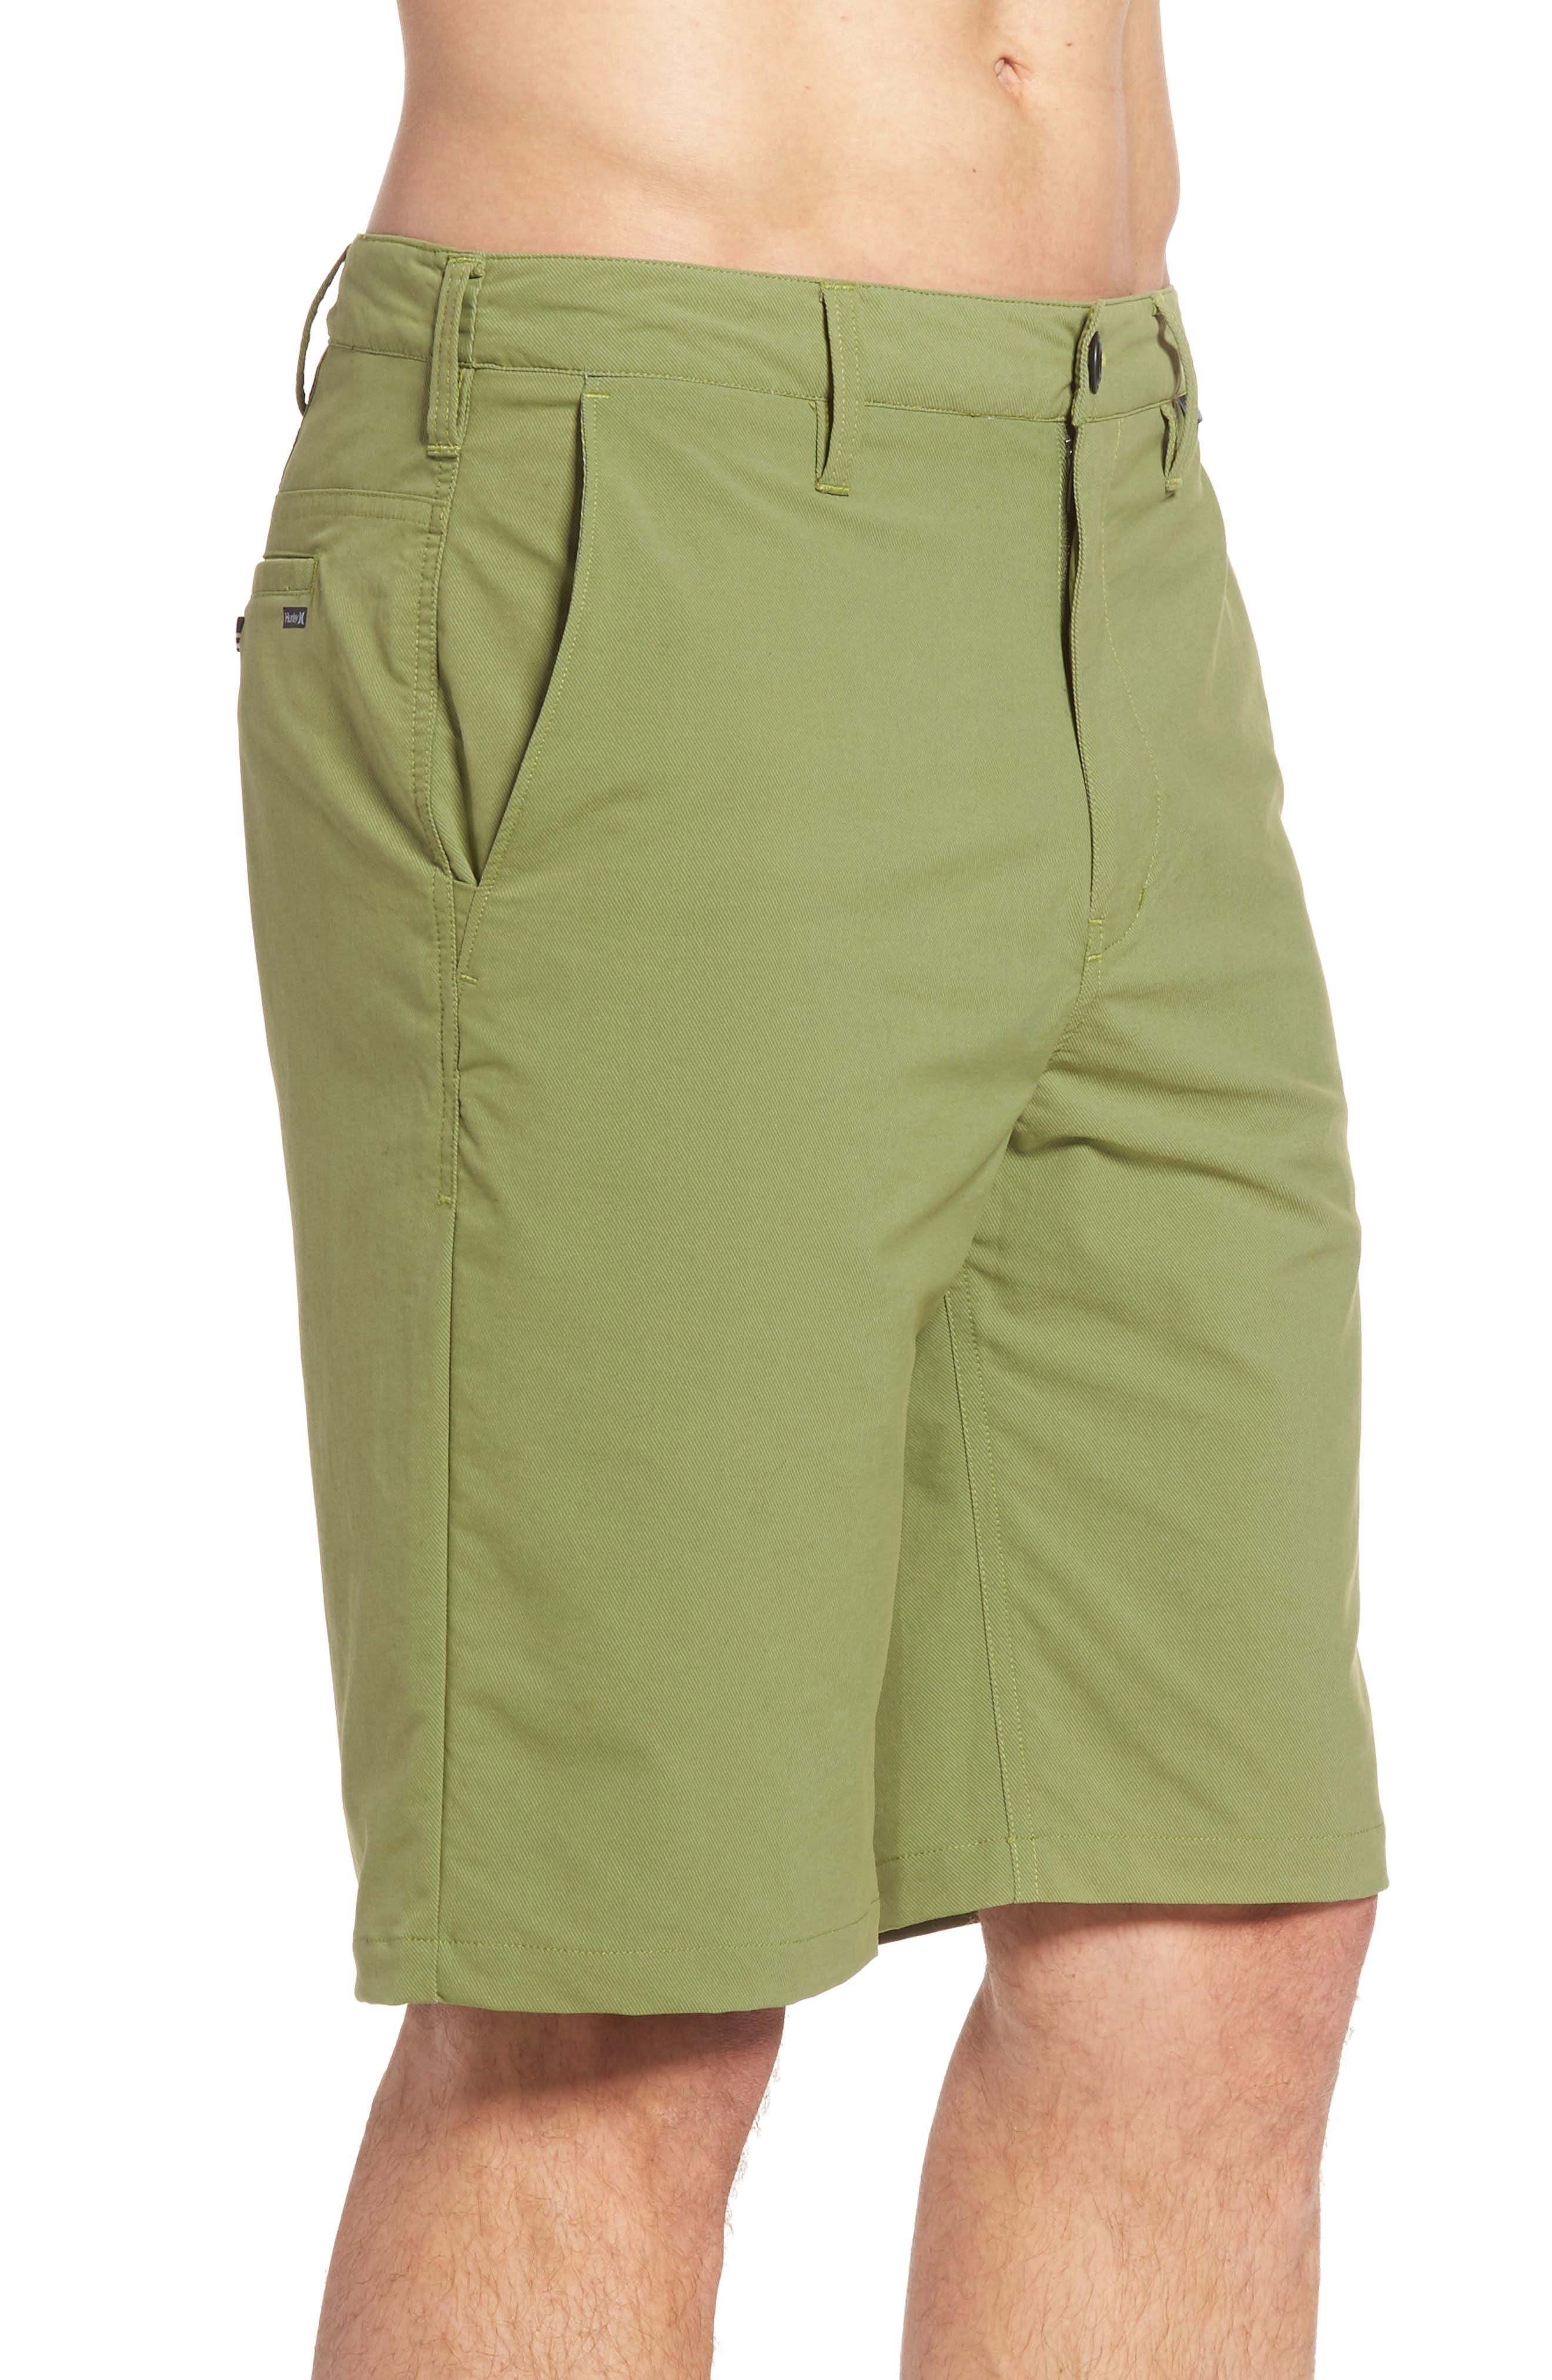 'Dry Out' Dri-FIT<sup>™</sup> Chino Shorts,                             Alternate thumbnail 153, color,